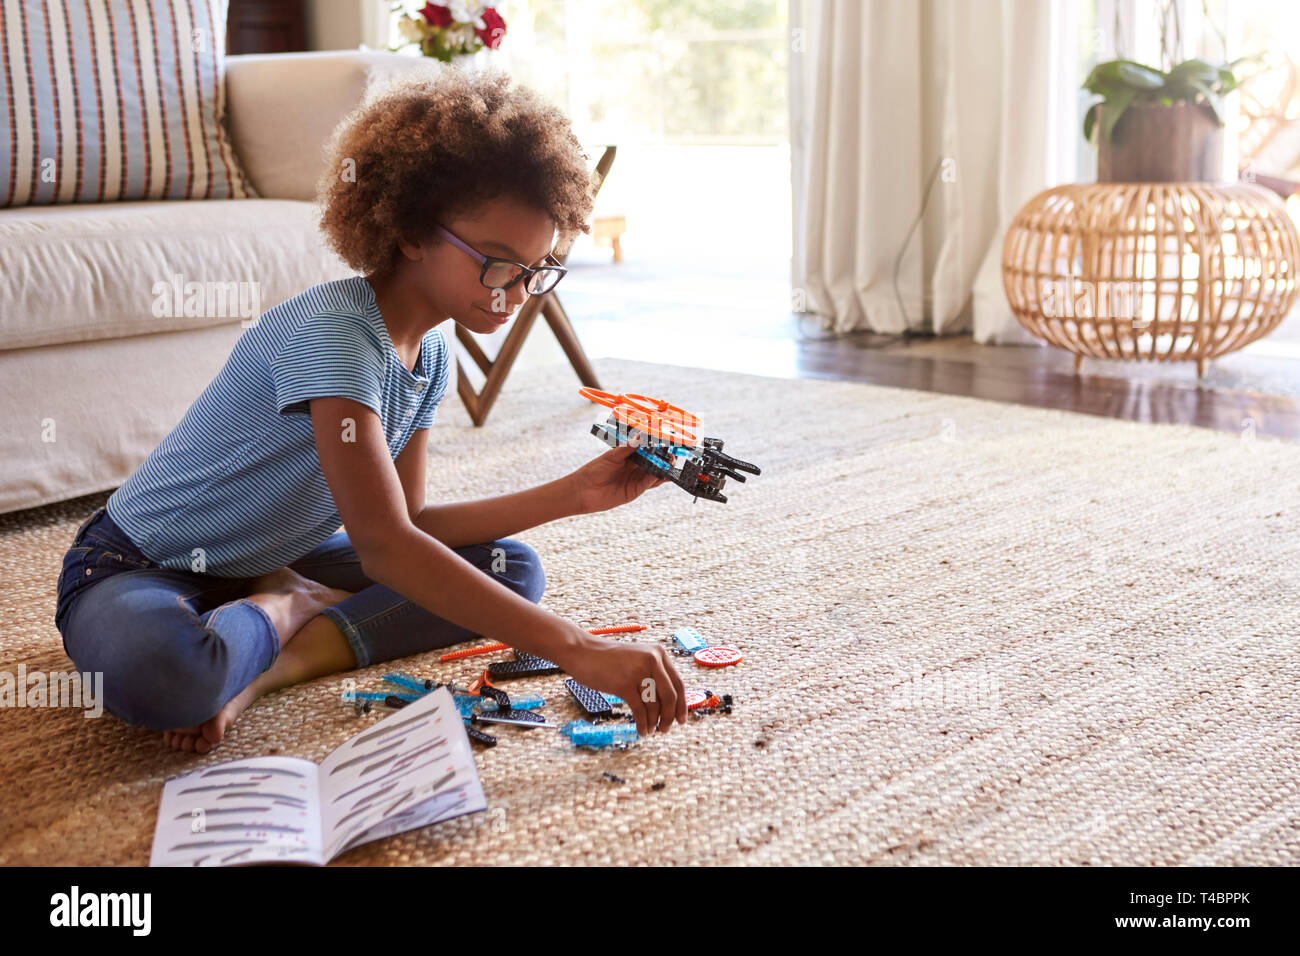 Pre-teen girl sitting on the floor in the living room building a toy from a construction kit, close up - Stock Image